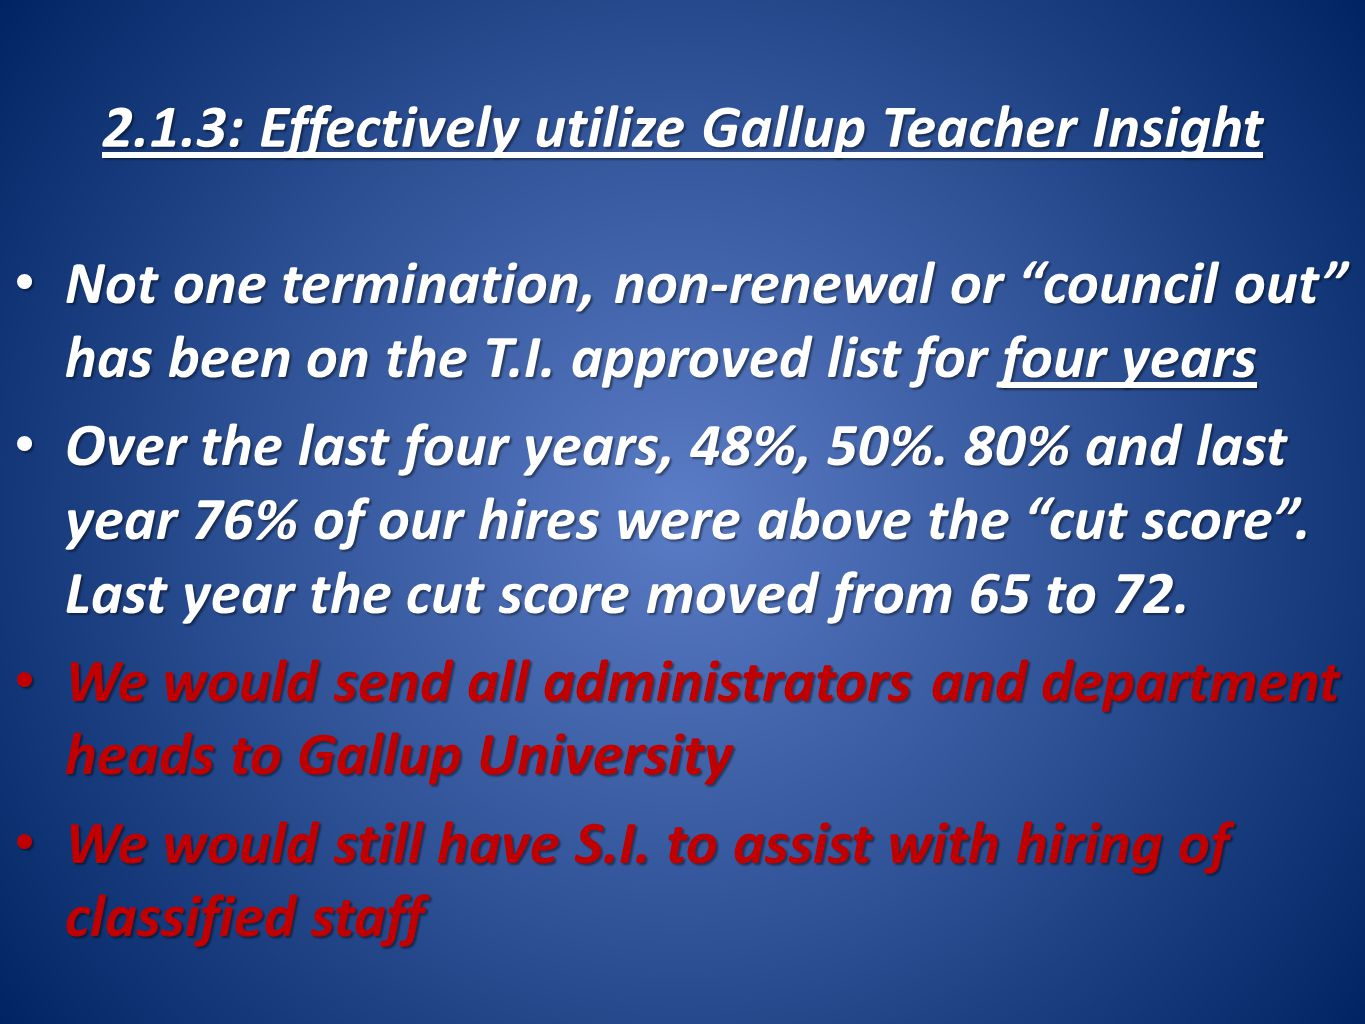 2.1.3: Effectively utilize Gallup Teacher Insight Not one termination, non-renewal or council out has been on the T.I. approved list for four years No